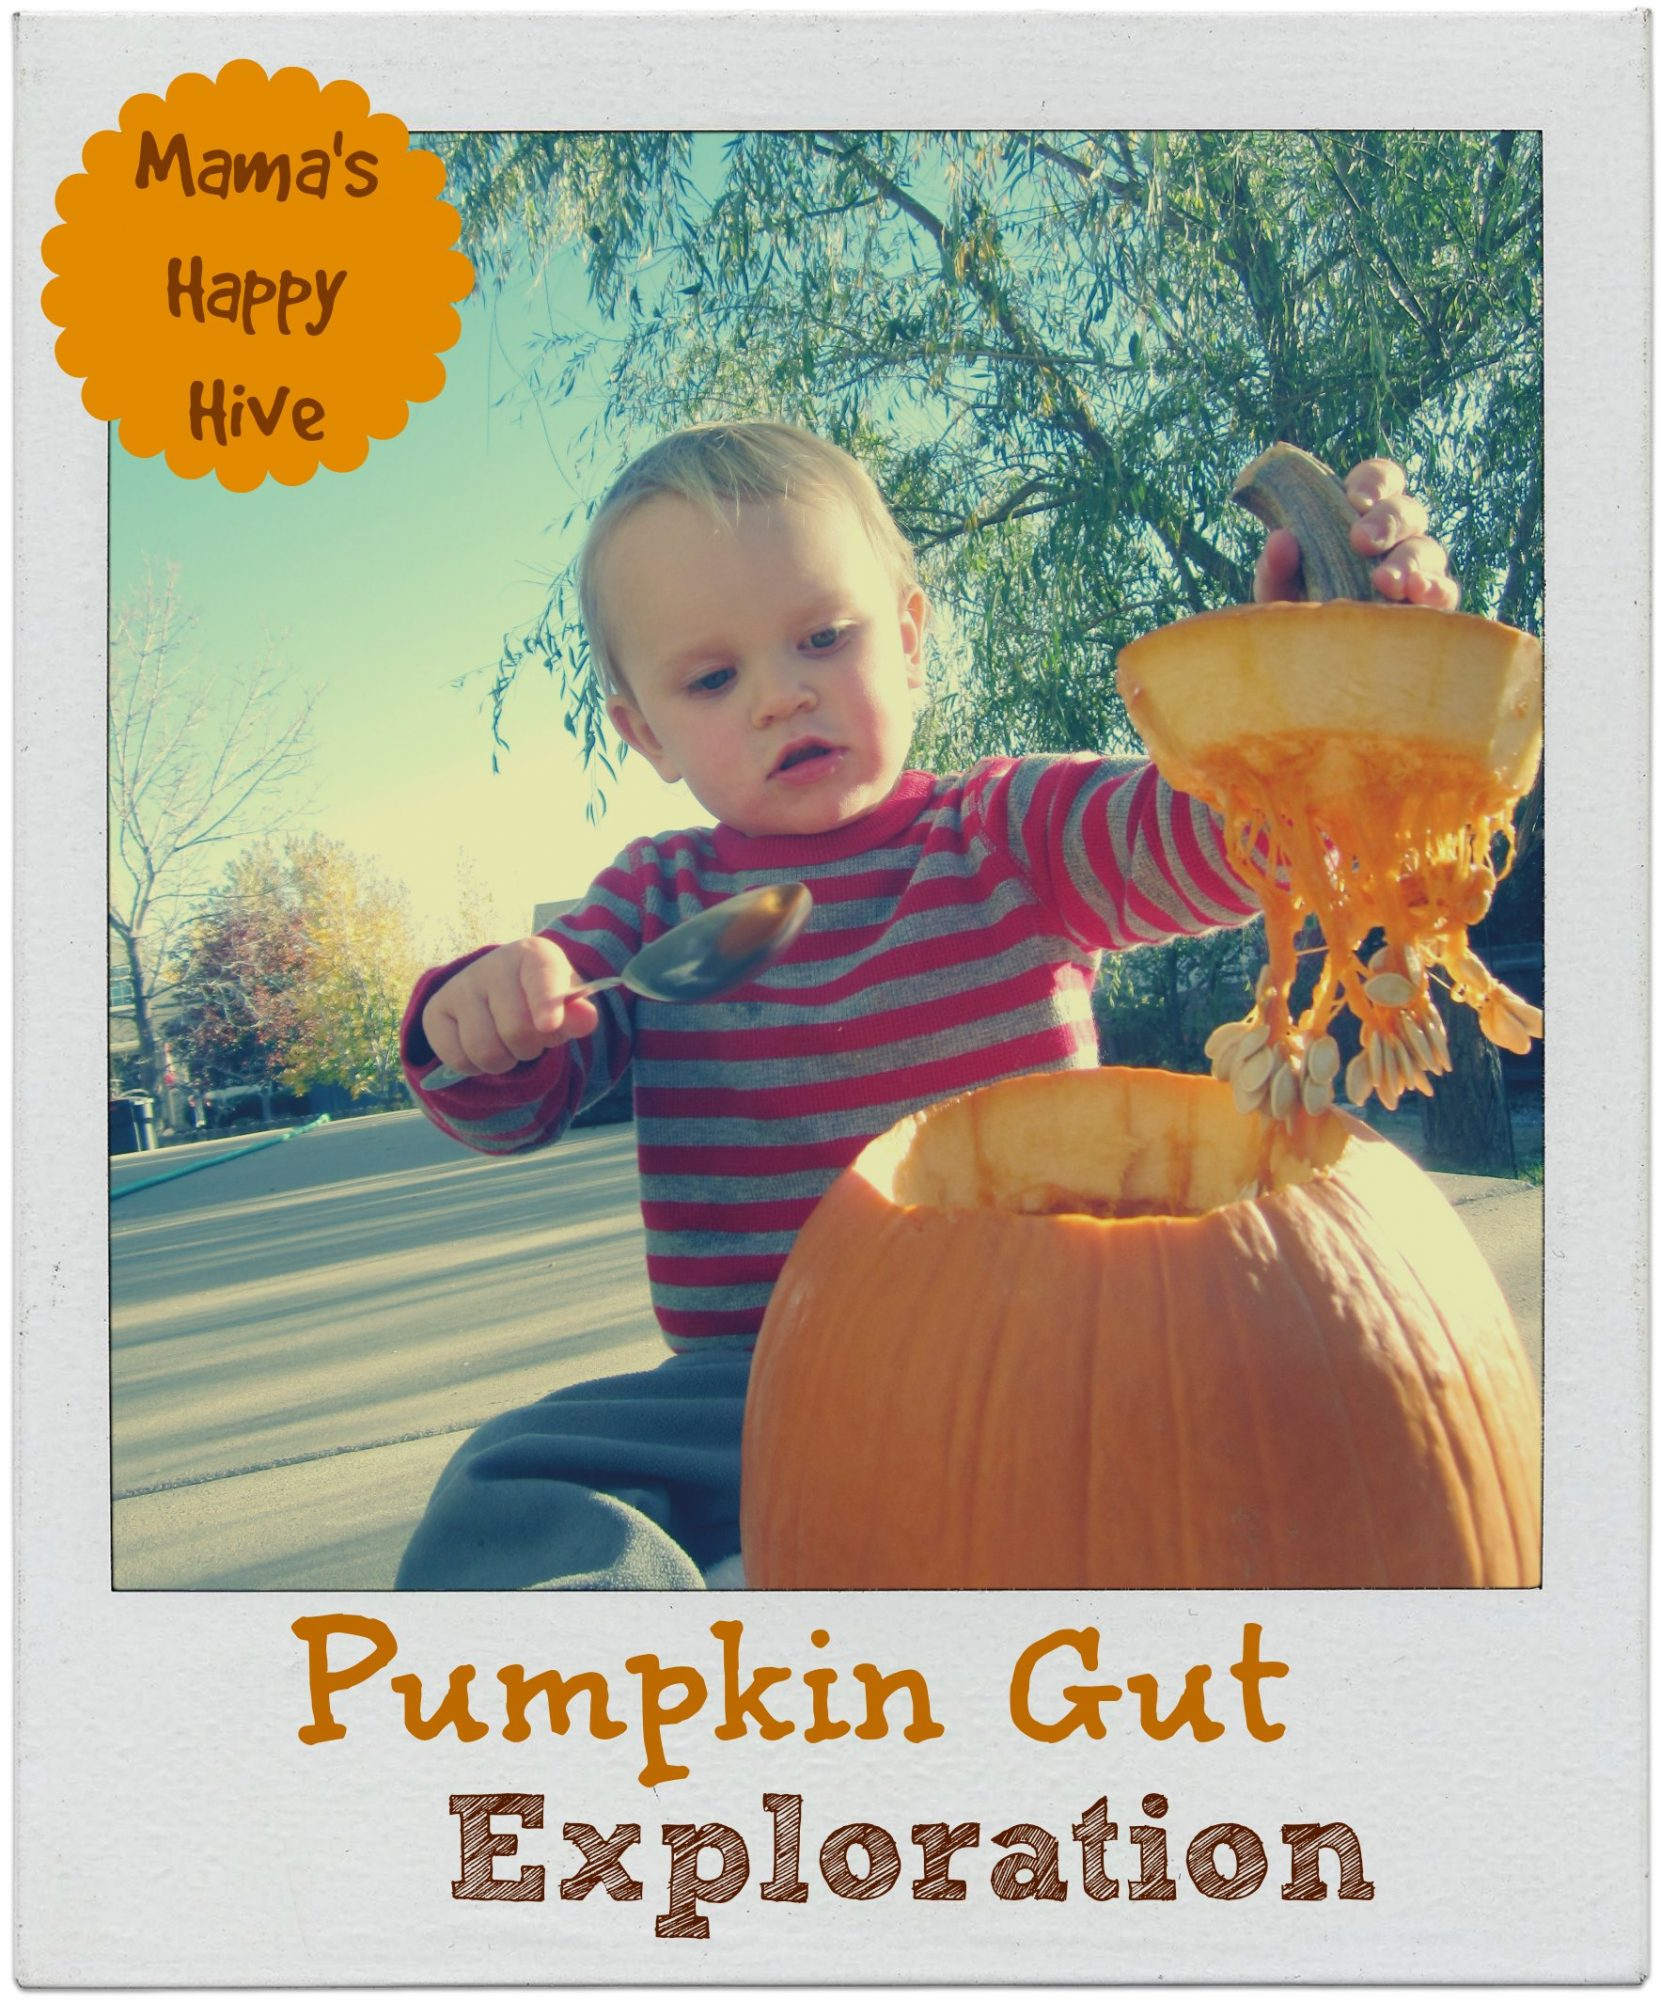 Pumpkin Gut Exploration 2 - www.mamashappyhive.com